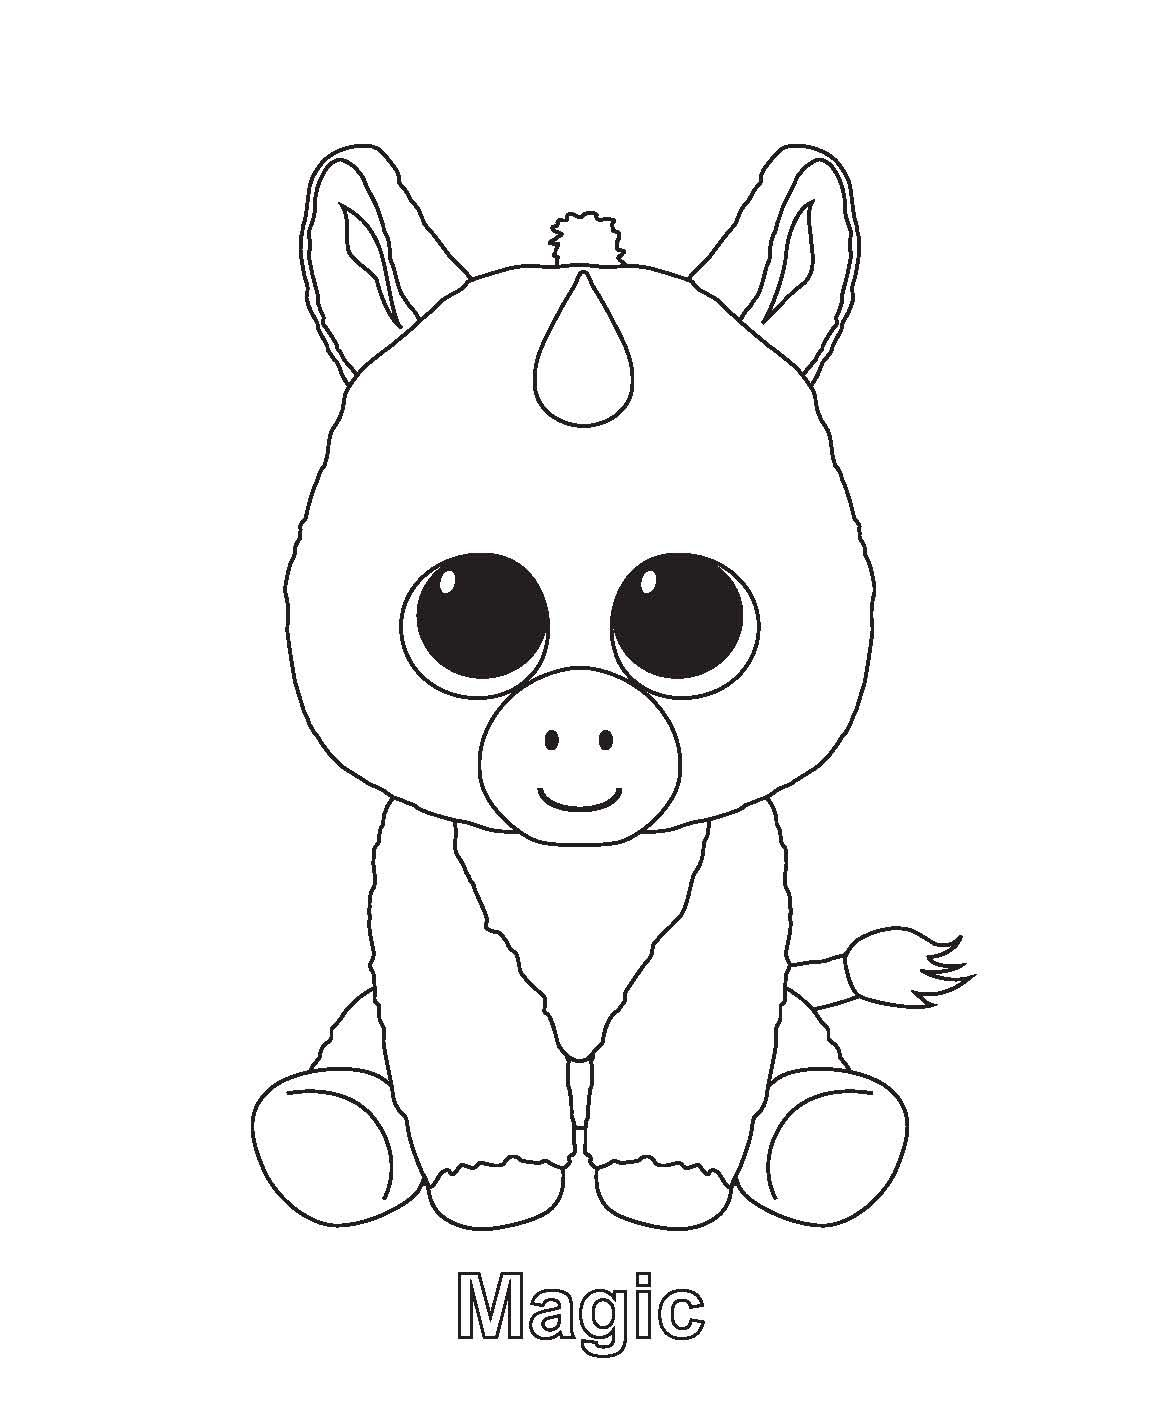 ty coloring pages Ty beanie boo coloring pages download and print for free | C's Pet  ty coloring pages